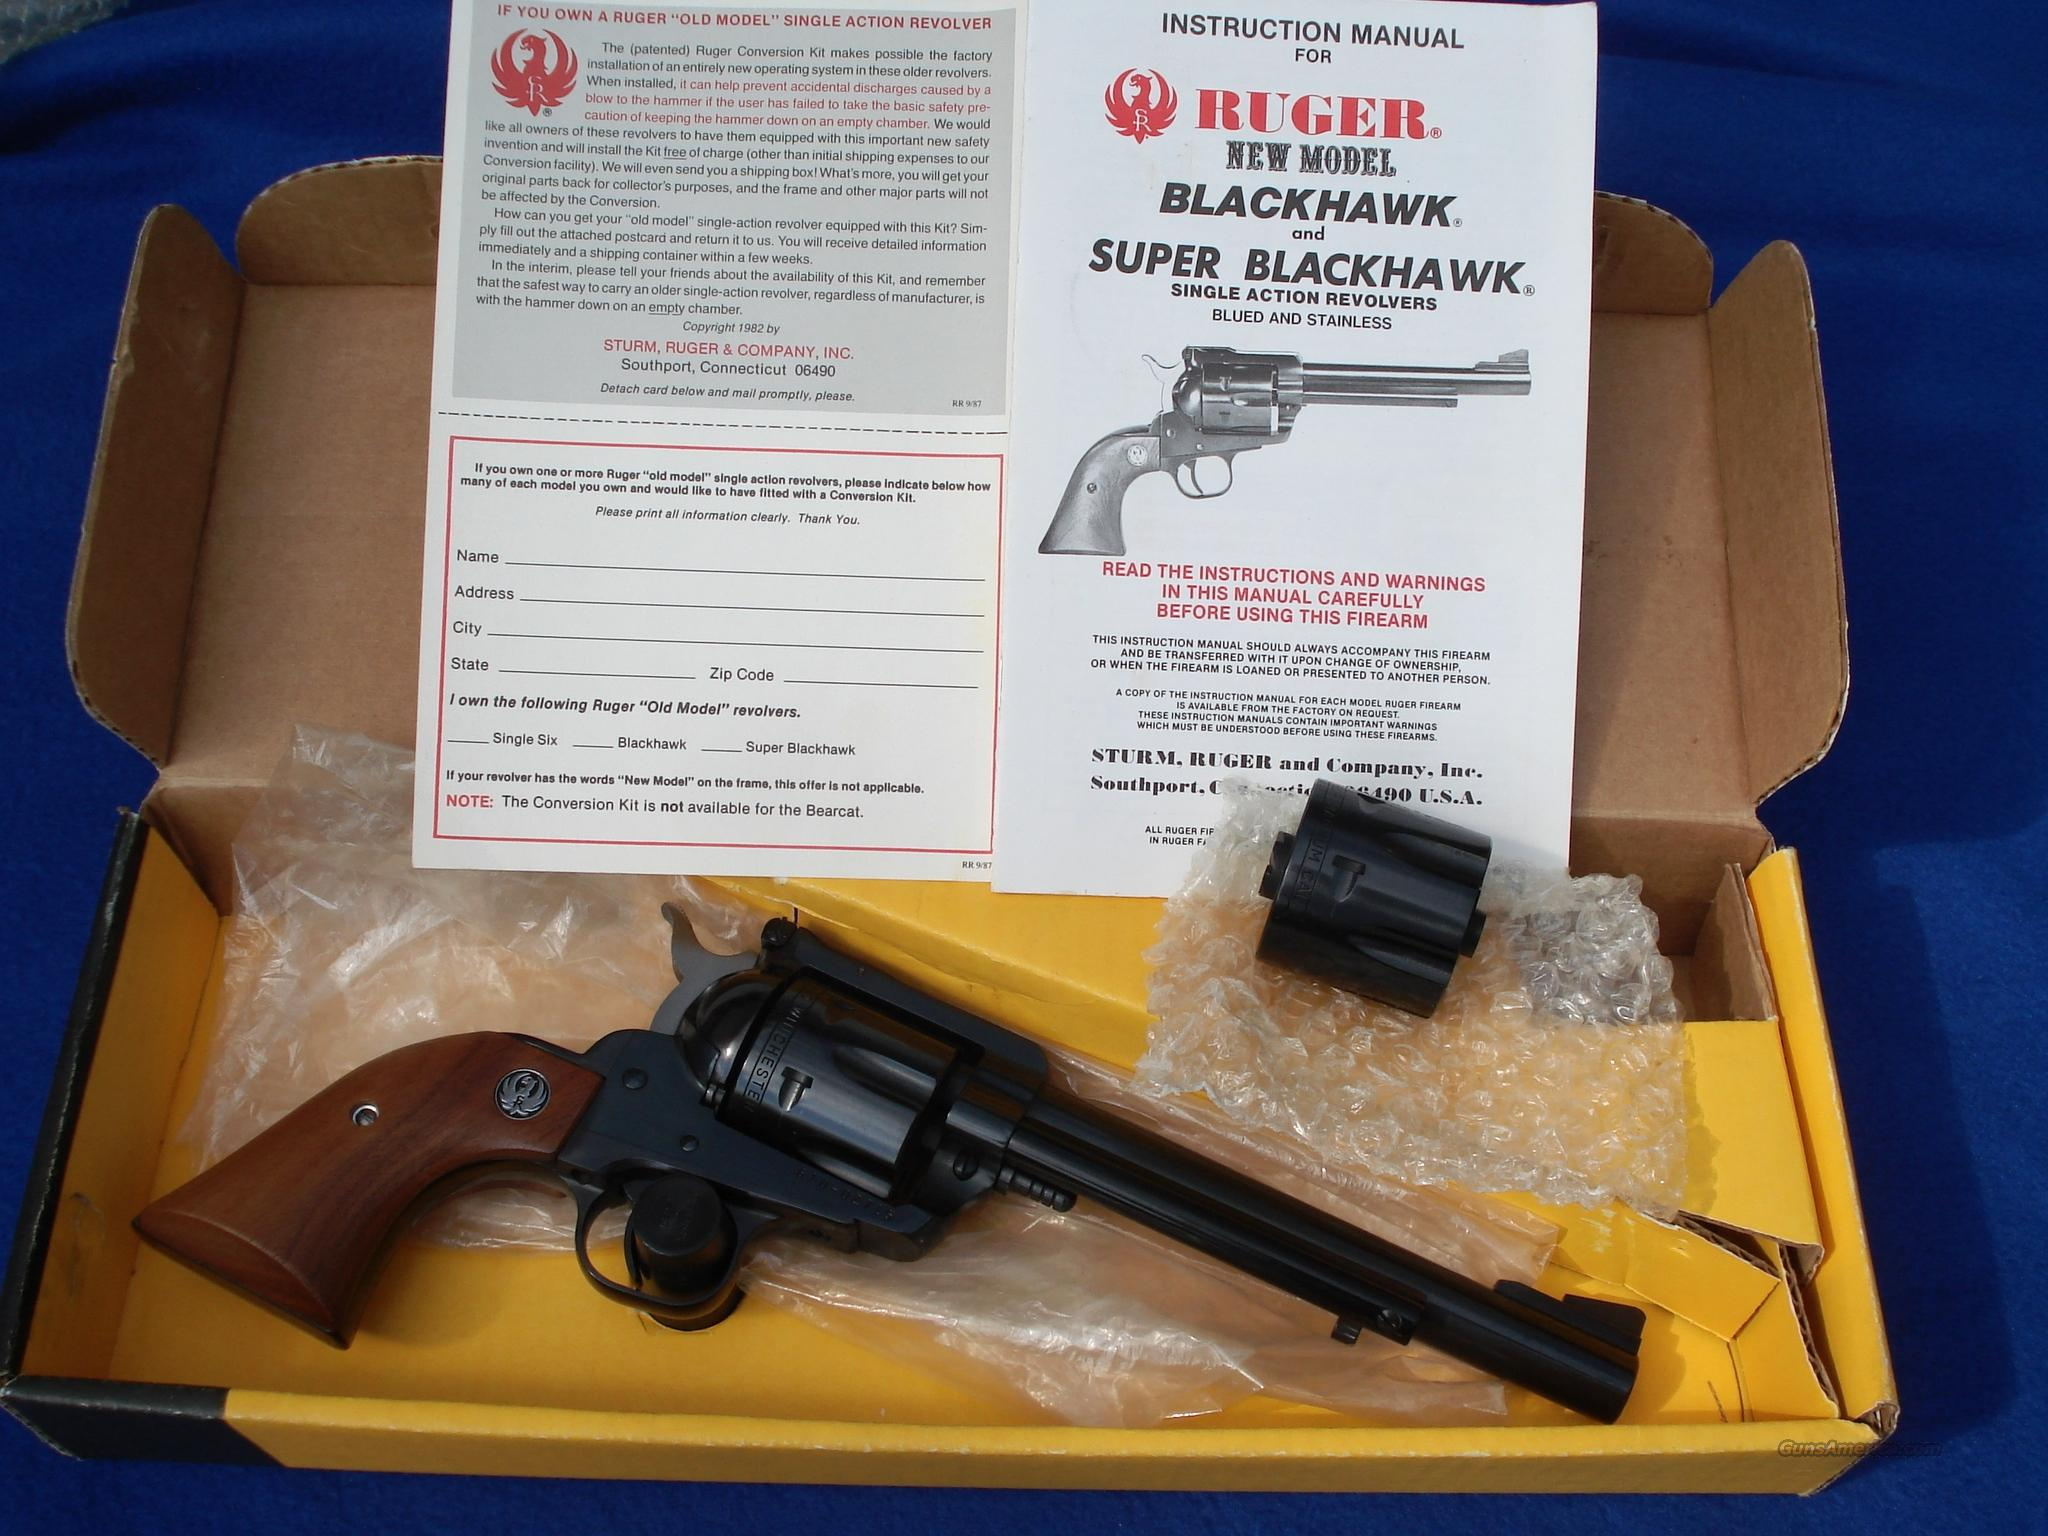 Ruger Blackhawk Buckeye Special 32 32-20 .32 H&R New-in-Box  Guns > Pistols > Ruger Single Action Revolvers > Blackhawk Type